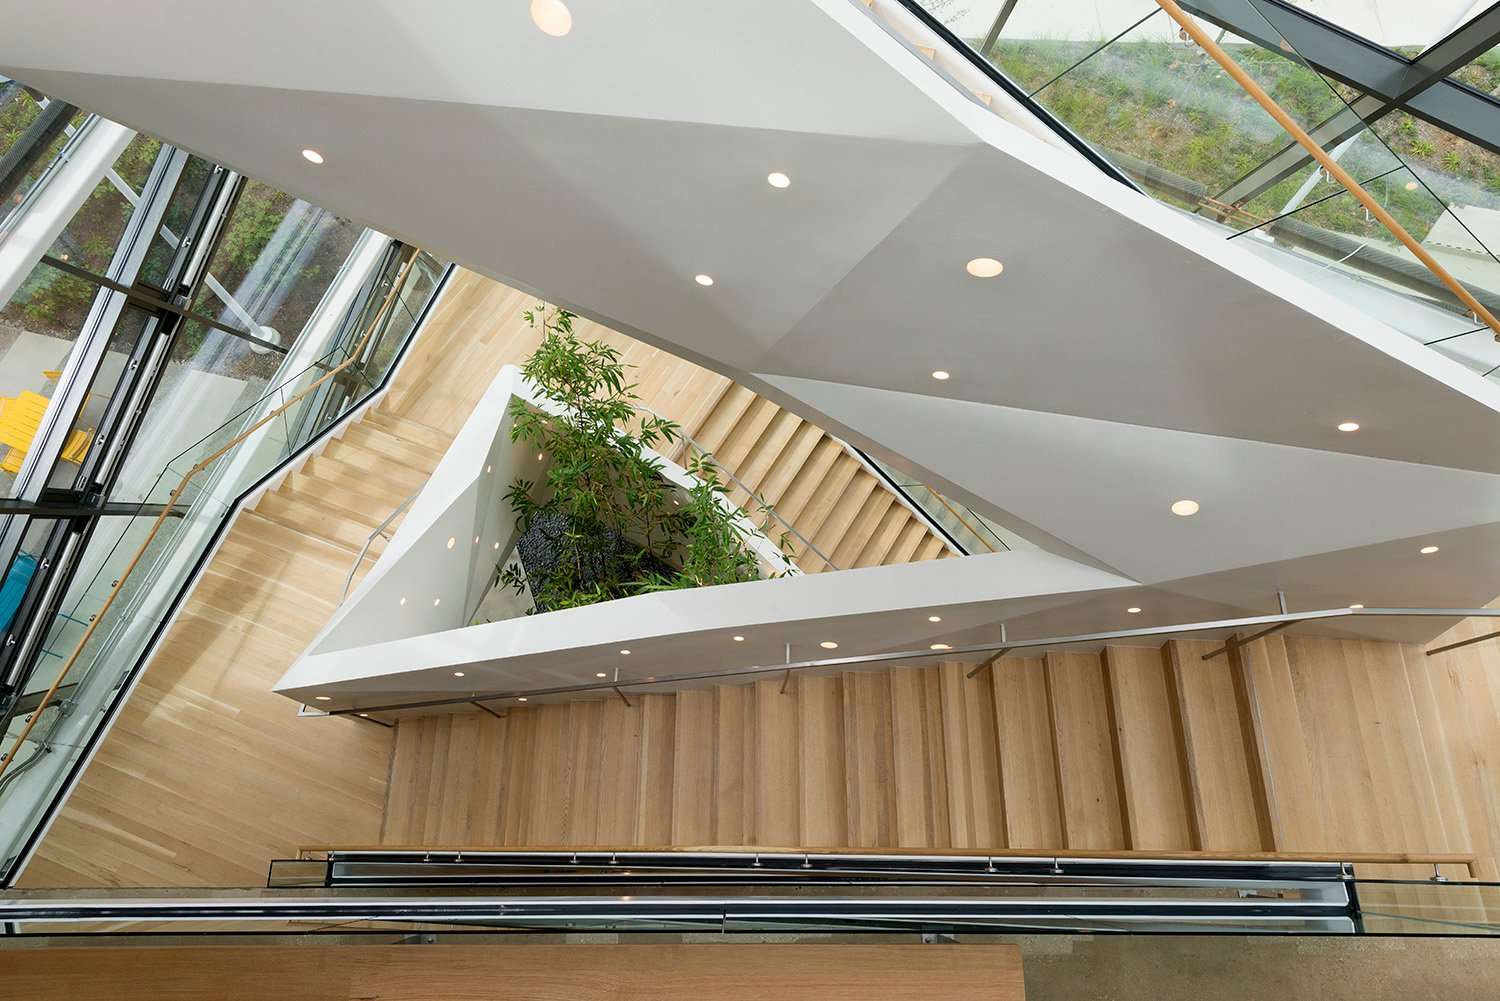 Staircase in the Atrium from above David Matthiessen